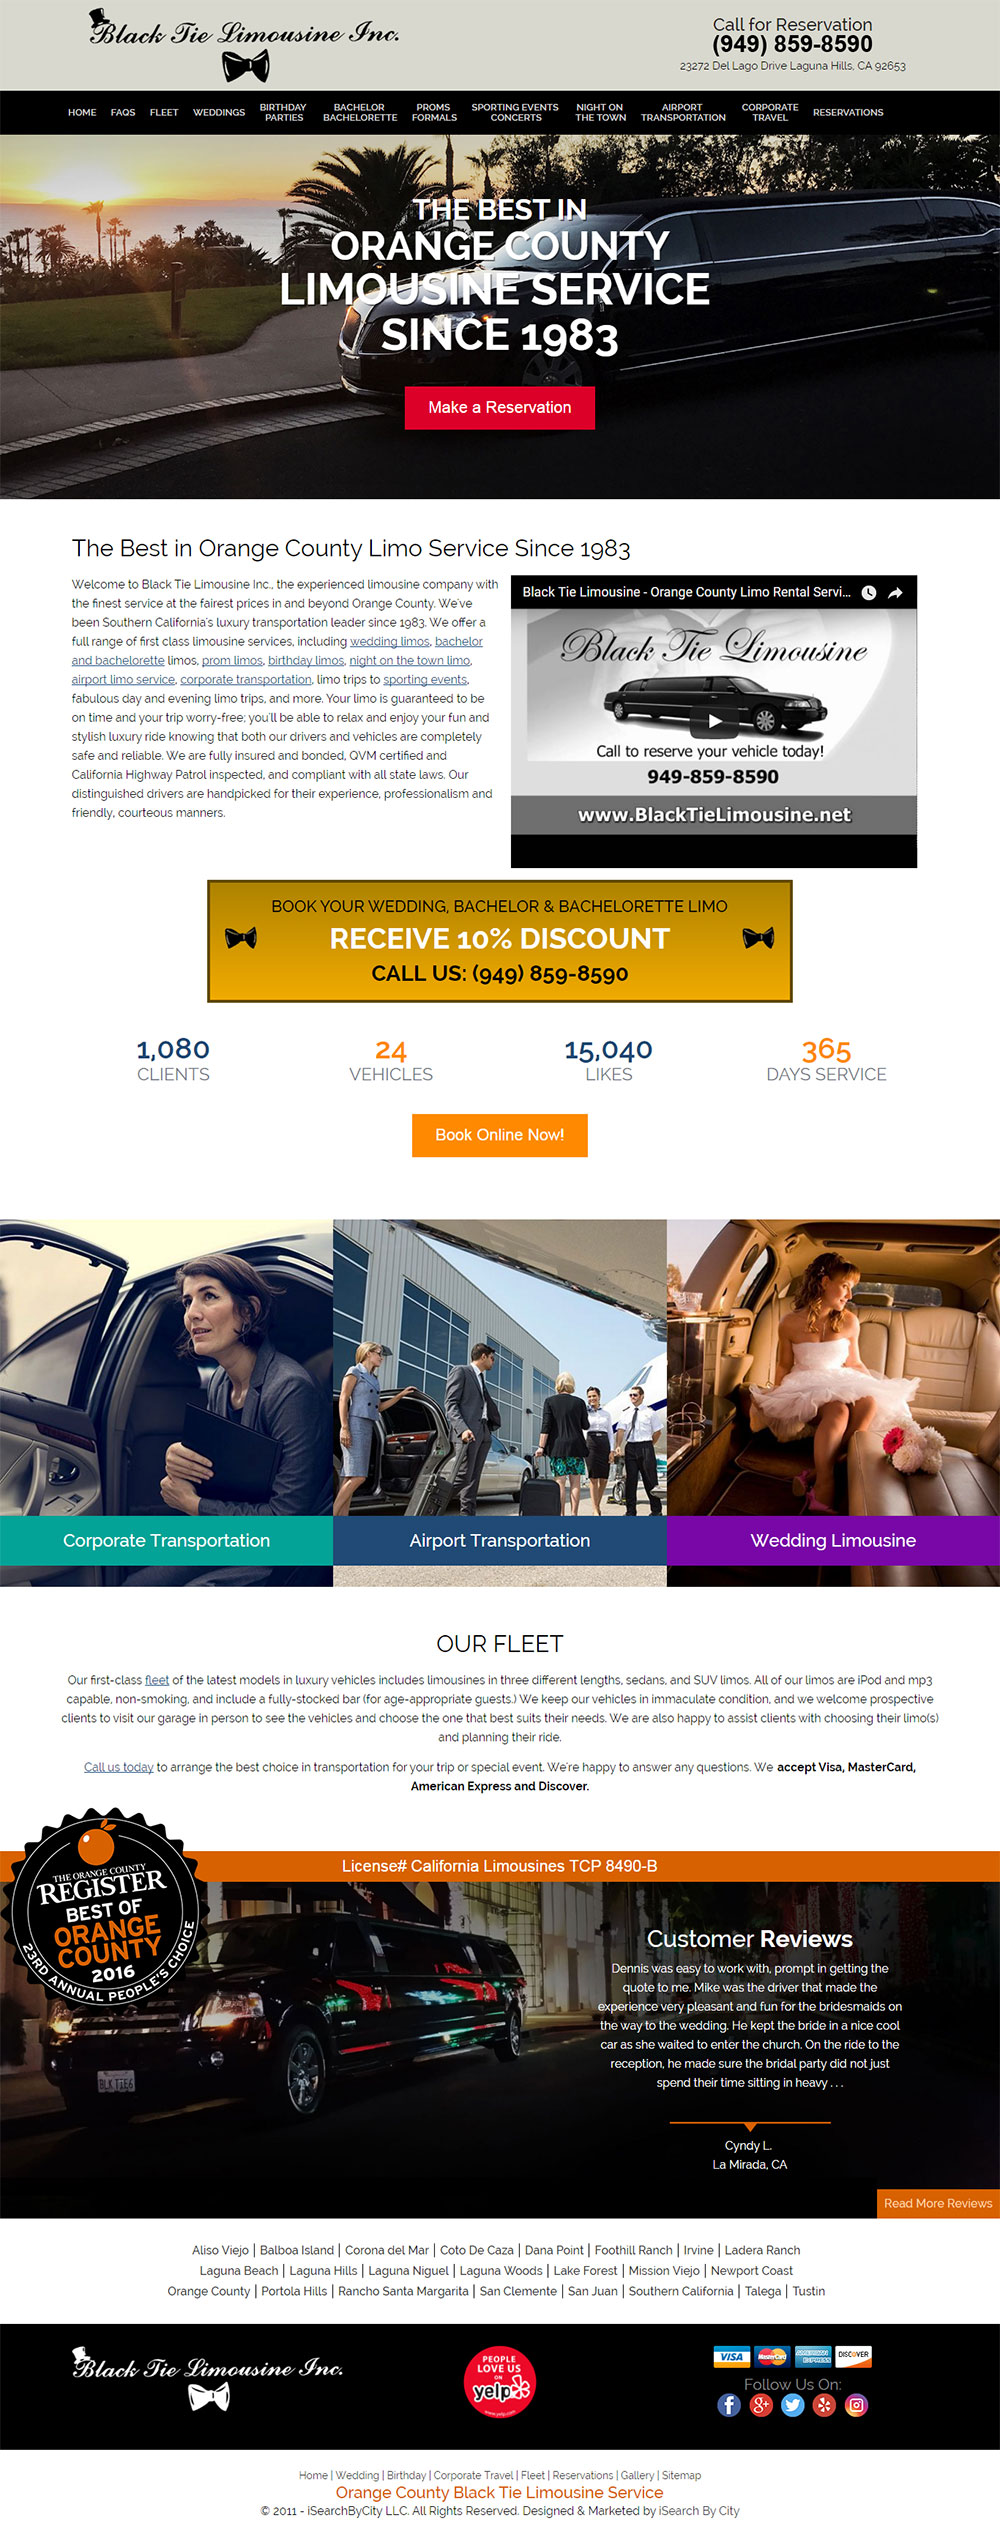 Optimized Website for Black Tie Limousine